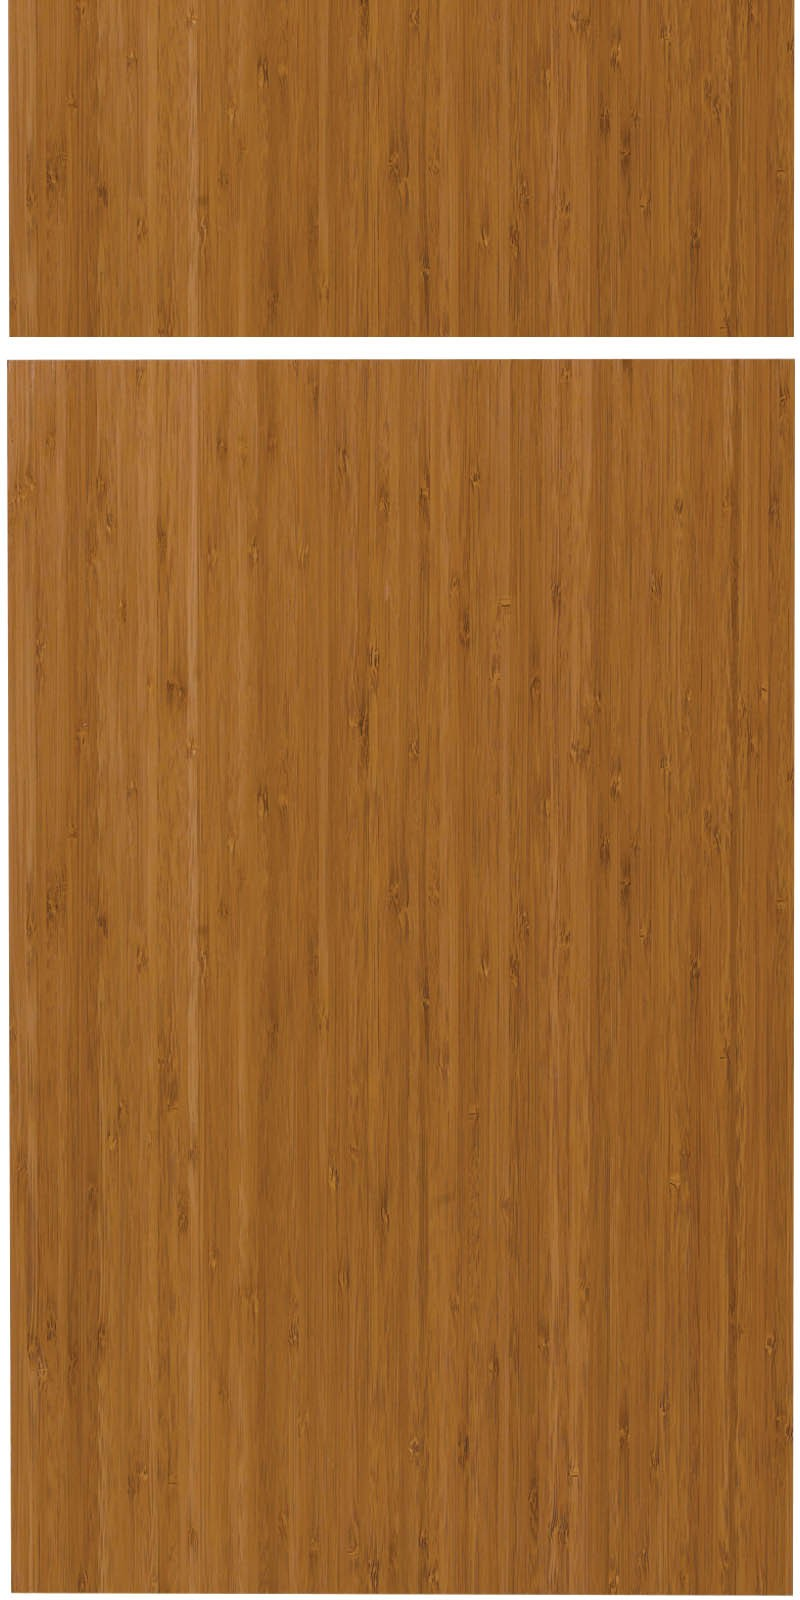 sc 1 st  Conestoga Wood Specialties & Savoy - Caramelized Bamboo